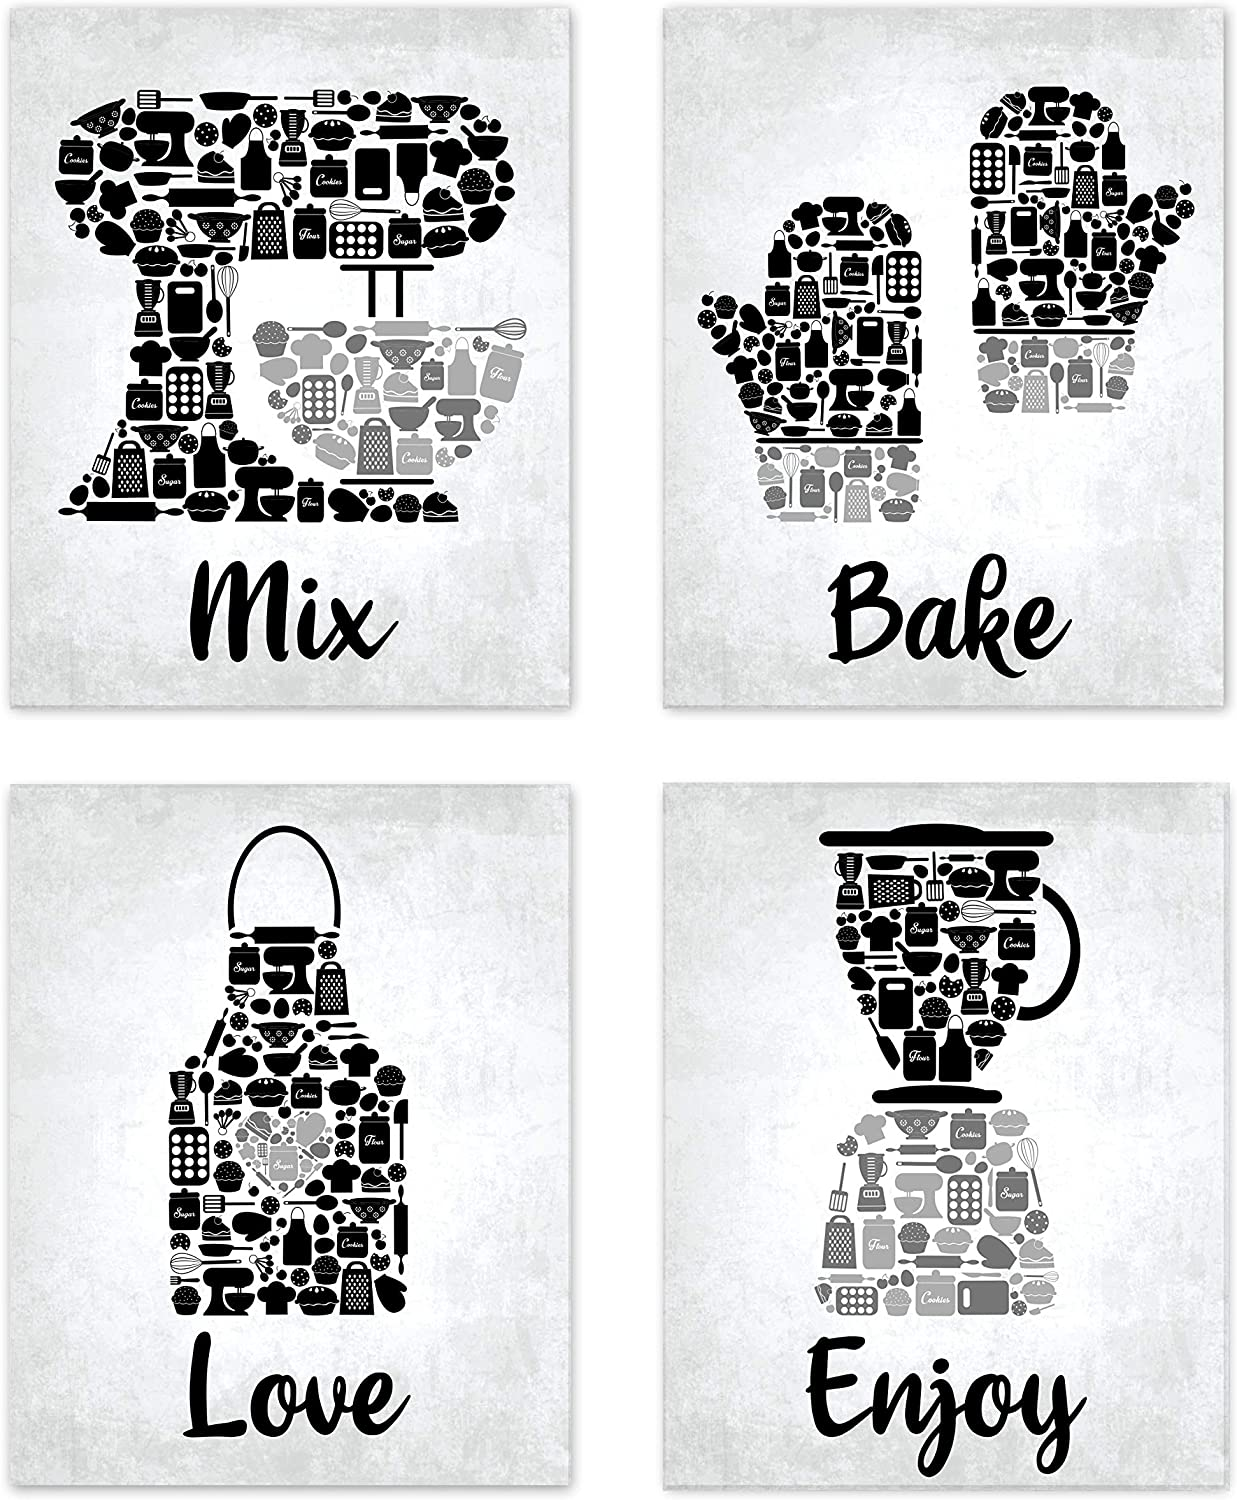 """Bake Mosaic Black Charcoal Grey Retro Inspirational Restaurant Utensil Food Wall Art Chef Baking Prints Posters Signs Sets for Rustic Country Kitchen Decor Home House Decor Decoration Dining Room Funny Sayings Quotes Unframed 8"""" x 10"""""""